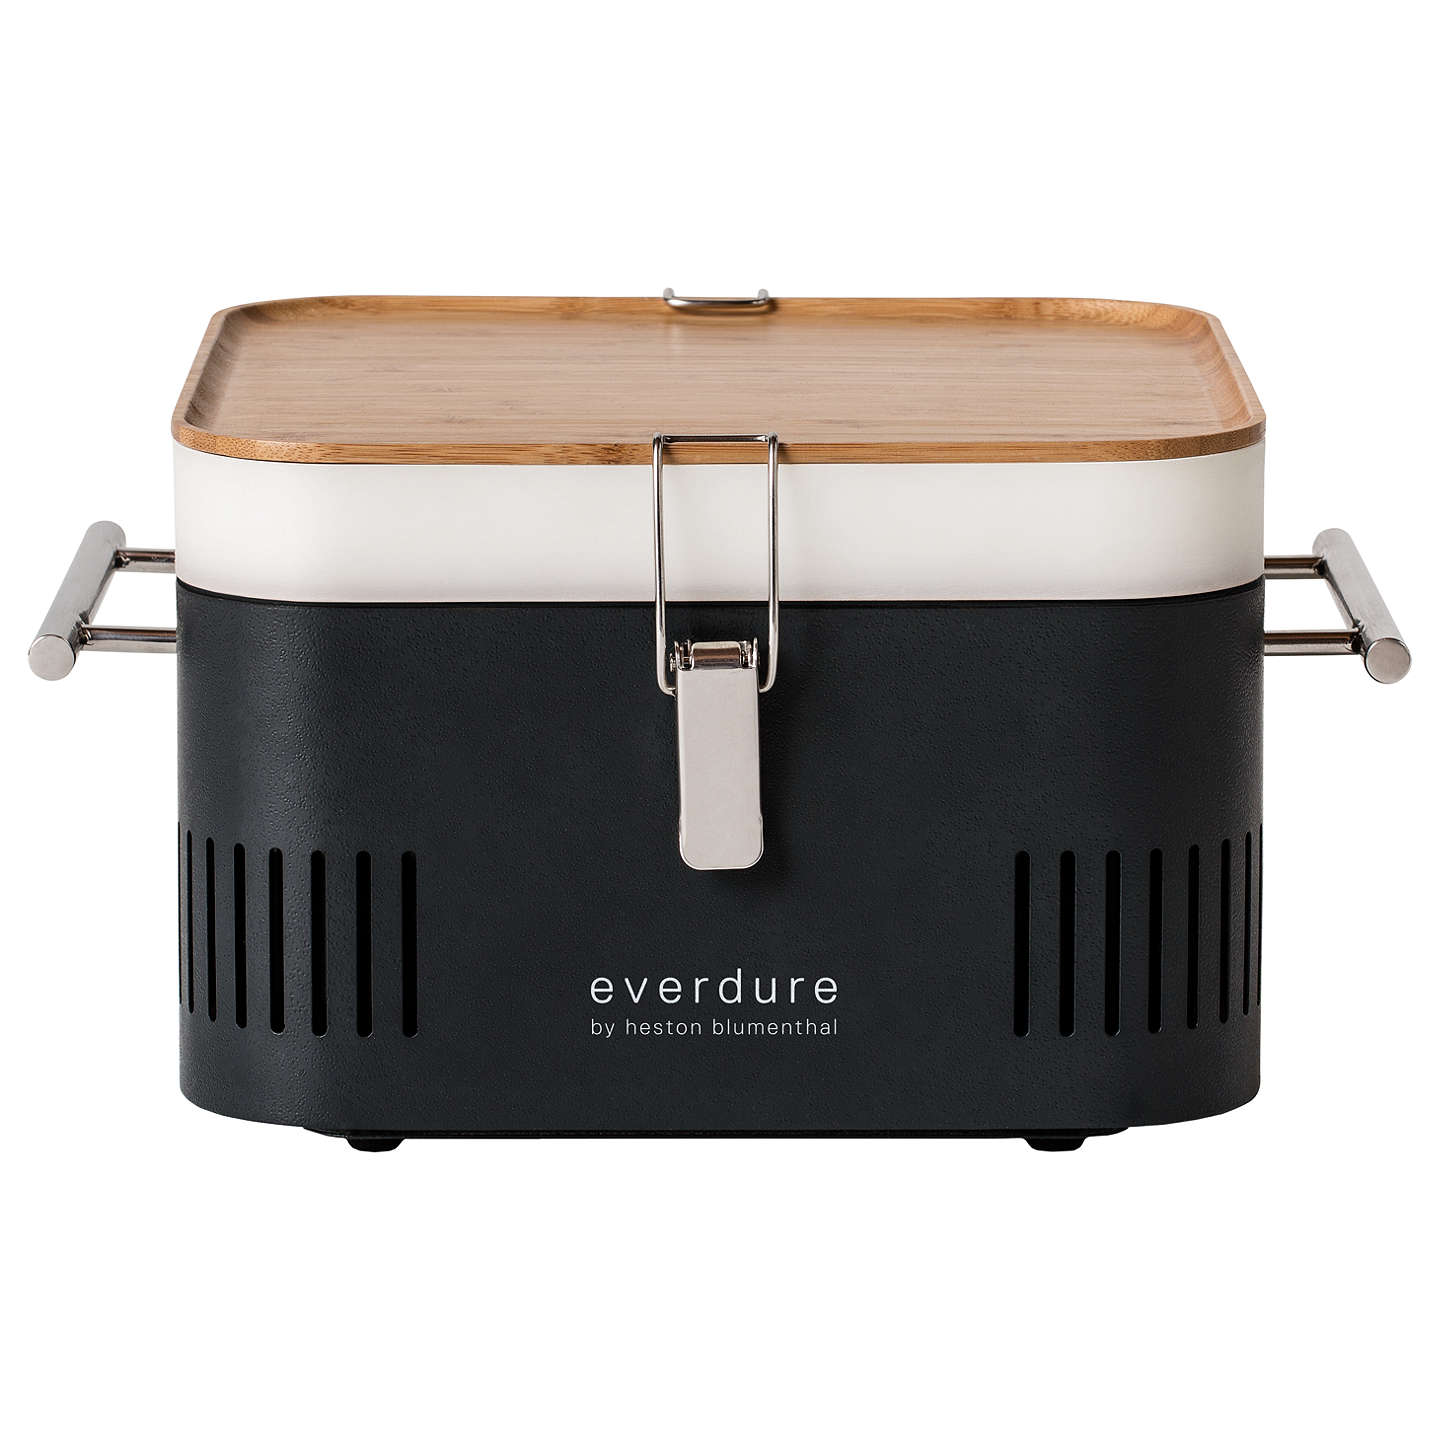 Buyeverdure by heston blumenthal CUBE Portable Charcoal BBQ, Graphite Online at johnlewis.com